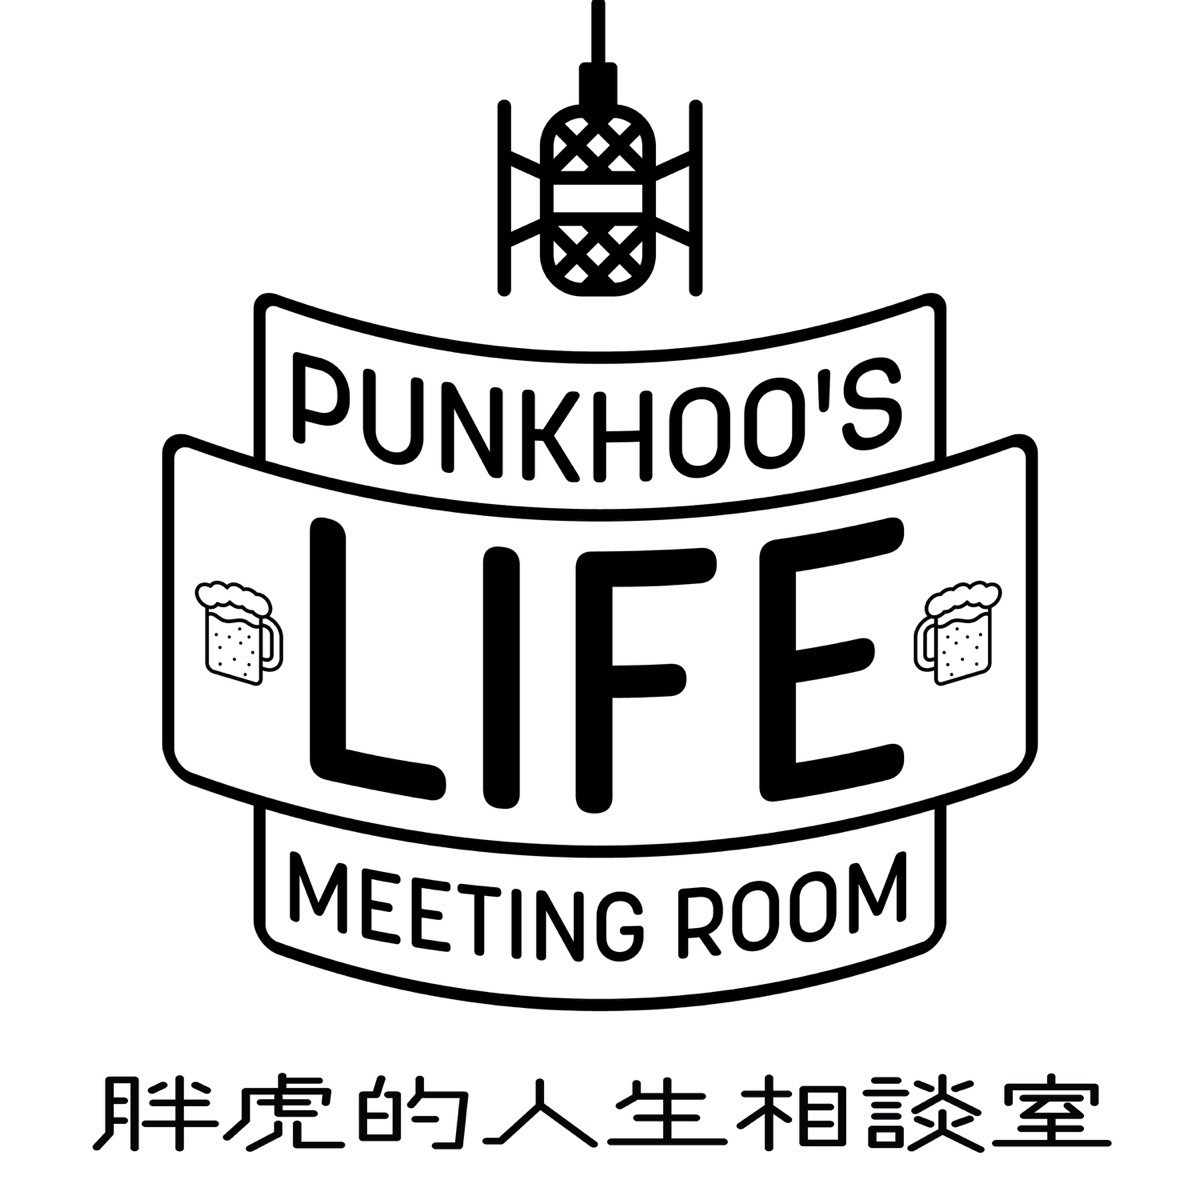 punkhoo's Life Meeting Room / 胖虎的人生相談室